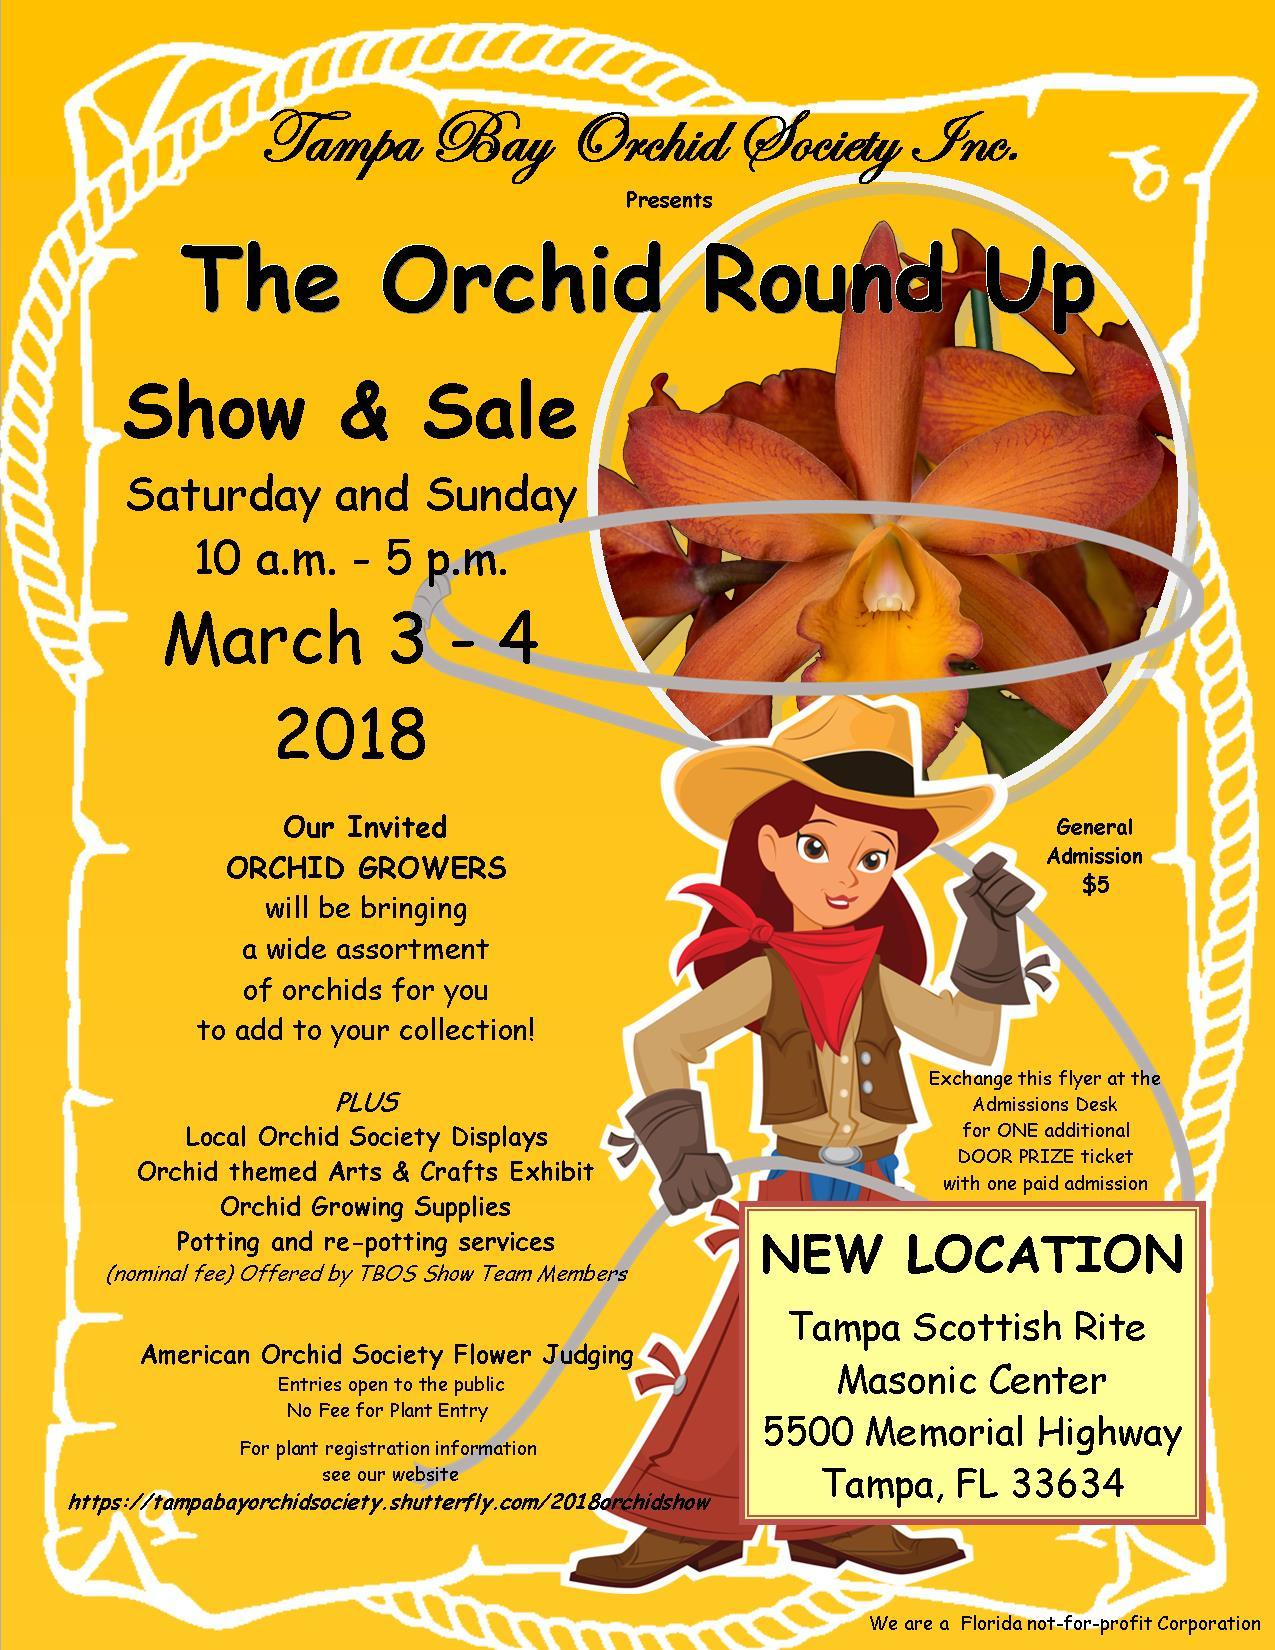 Orchid Show & Sale 2018- Tampa Bay Orchid Society Inc.